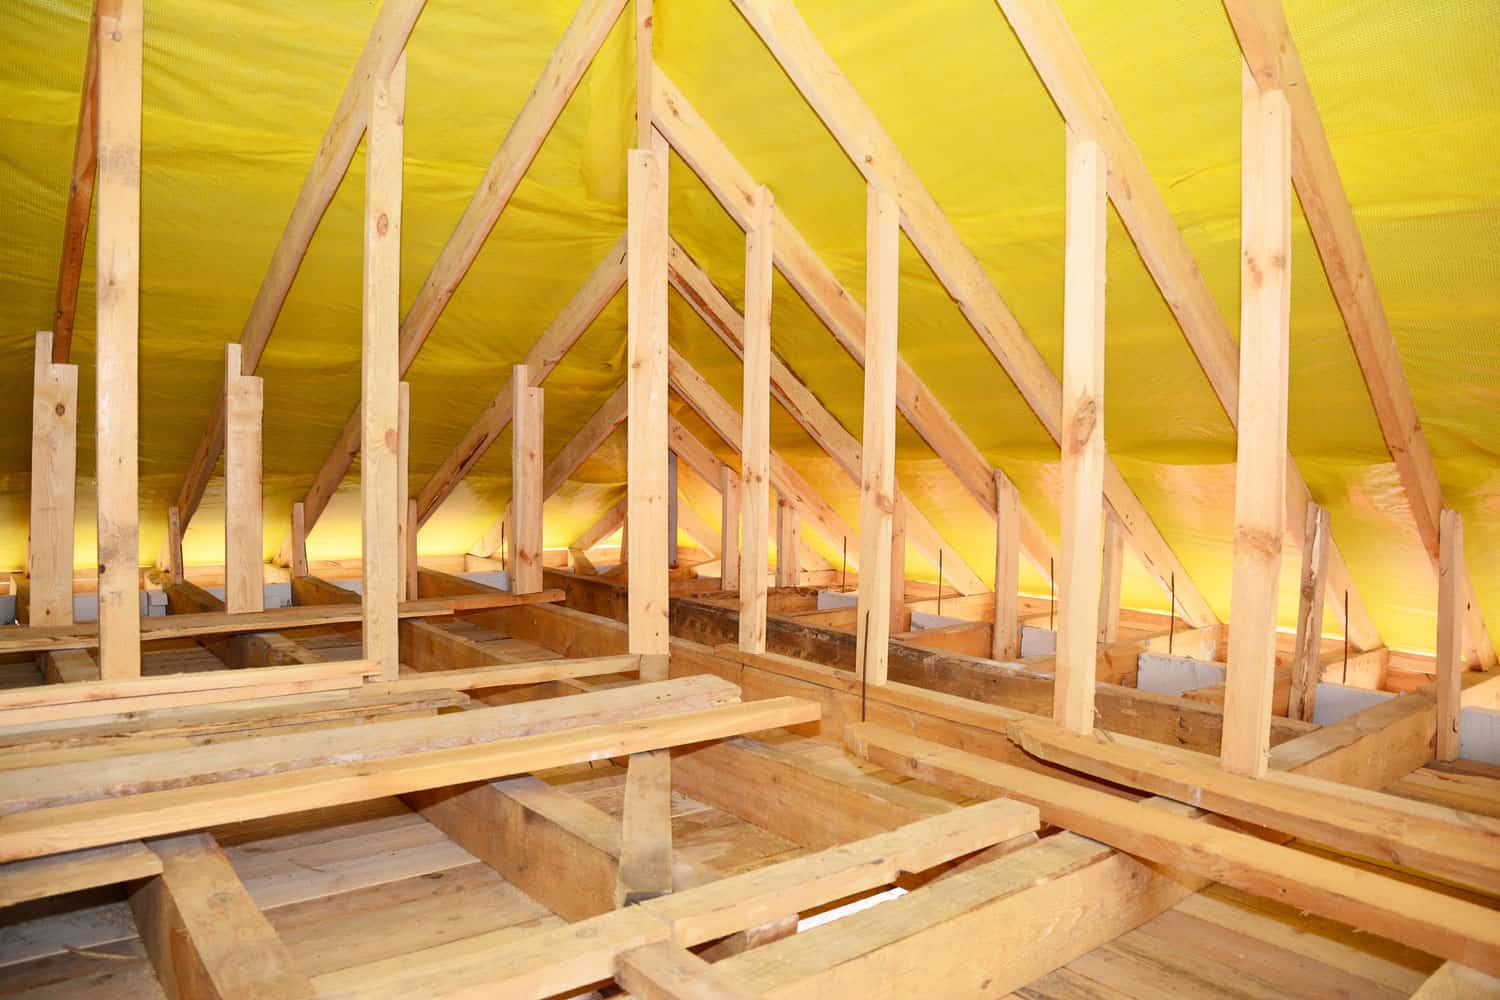 Roofing Construction Interior. Wooden Roof Beams, Wooden Frame, Rafters, Trusses, House Attic Construction Interior